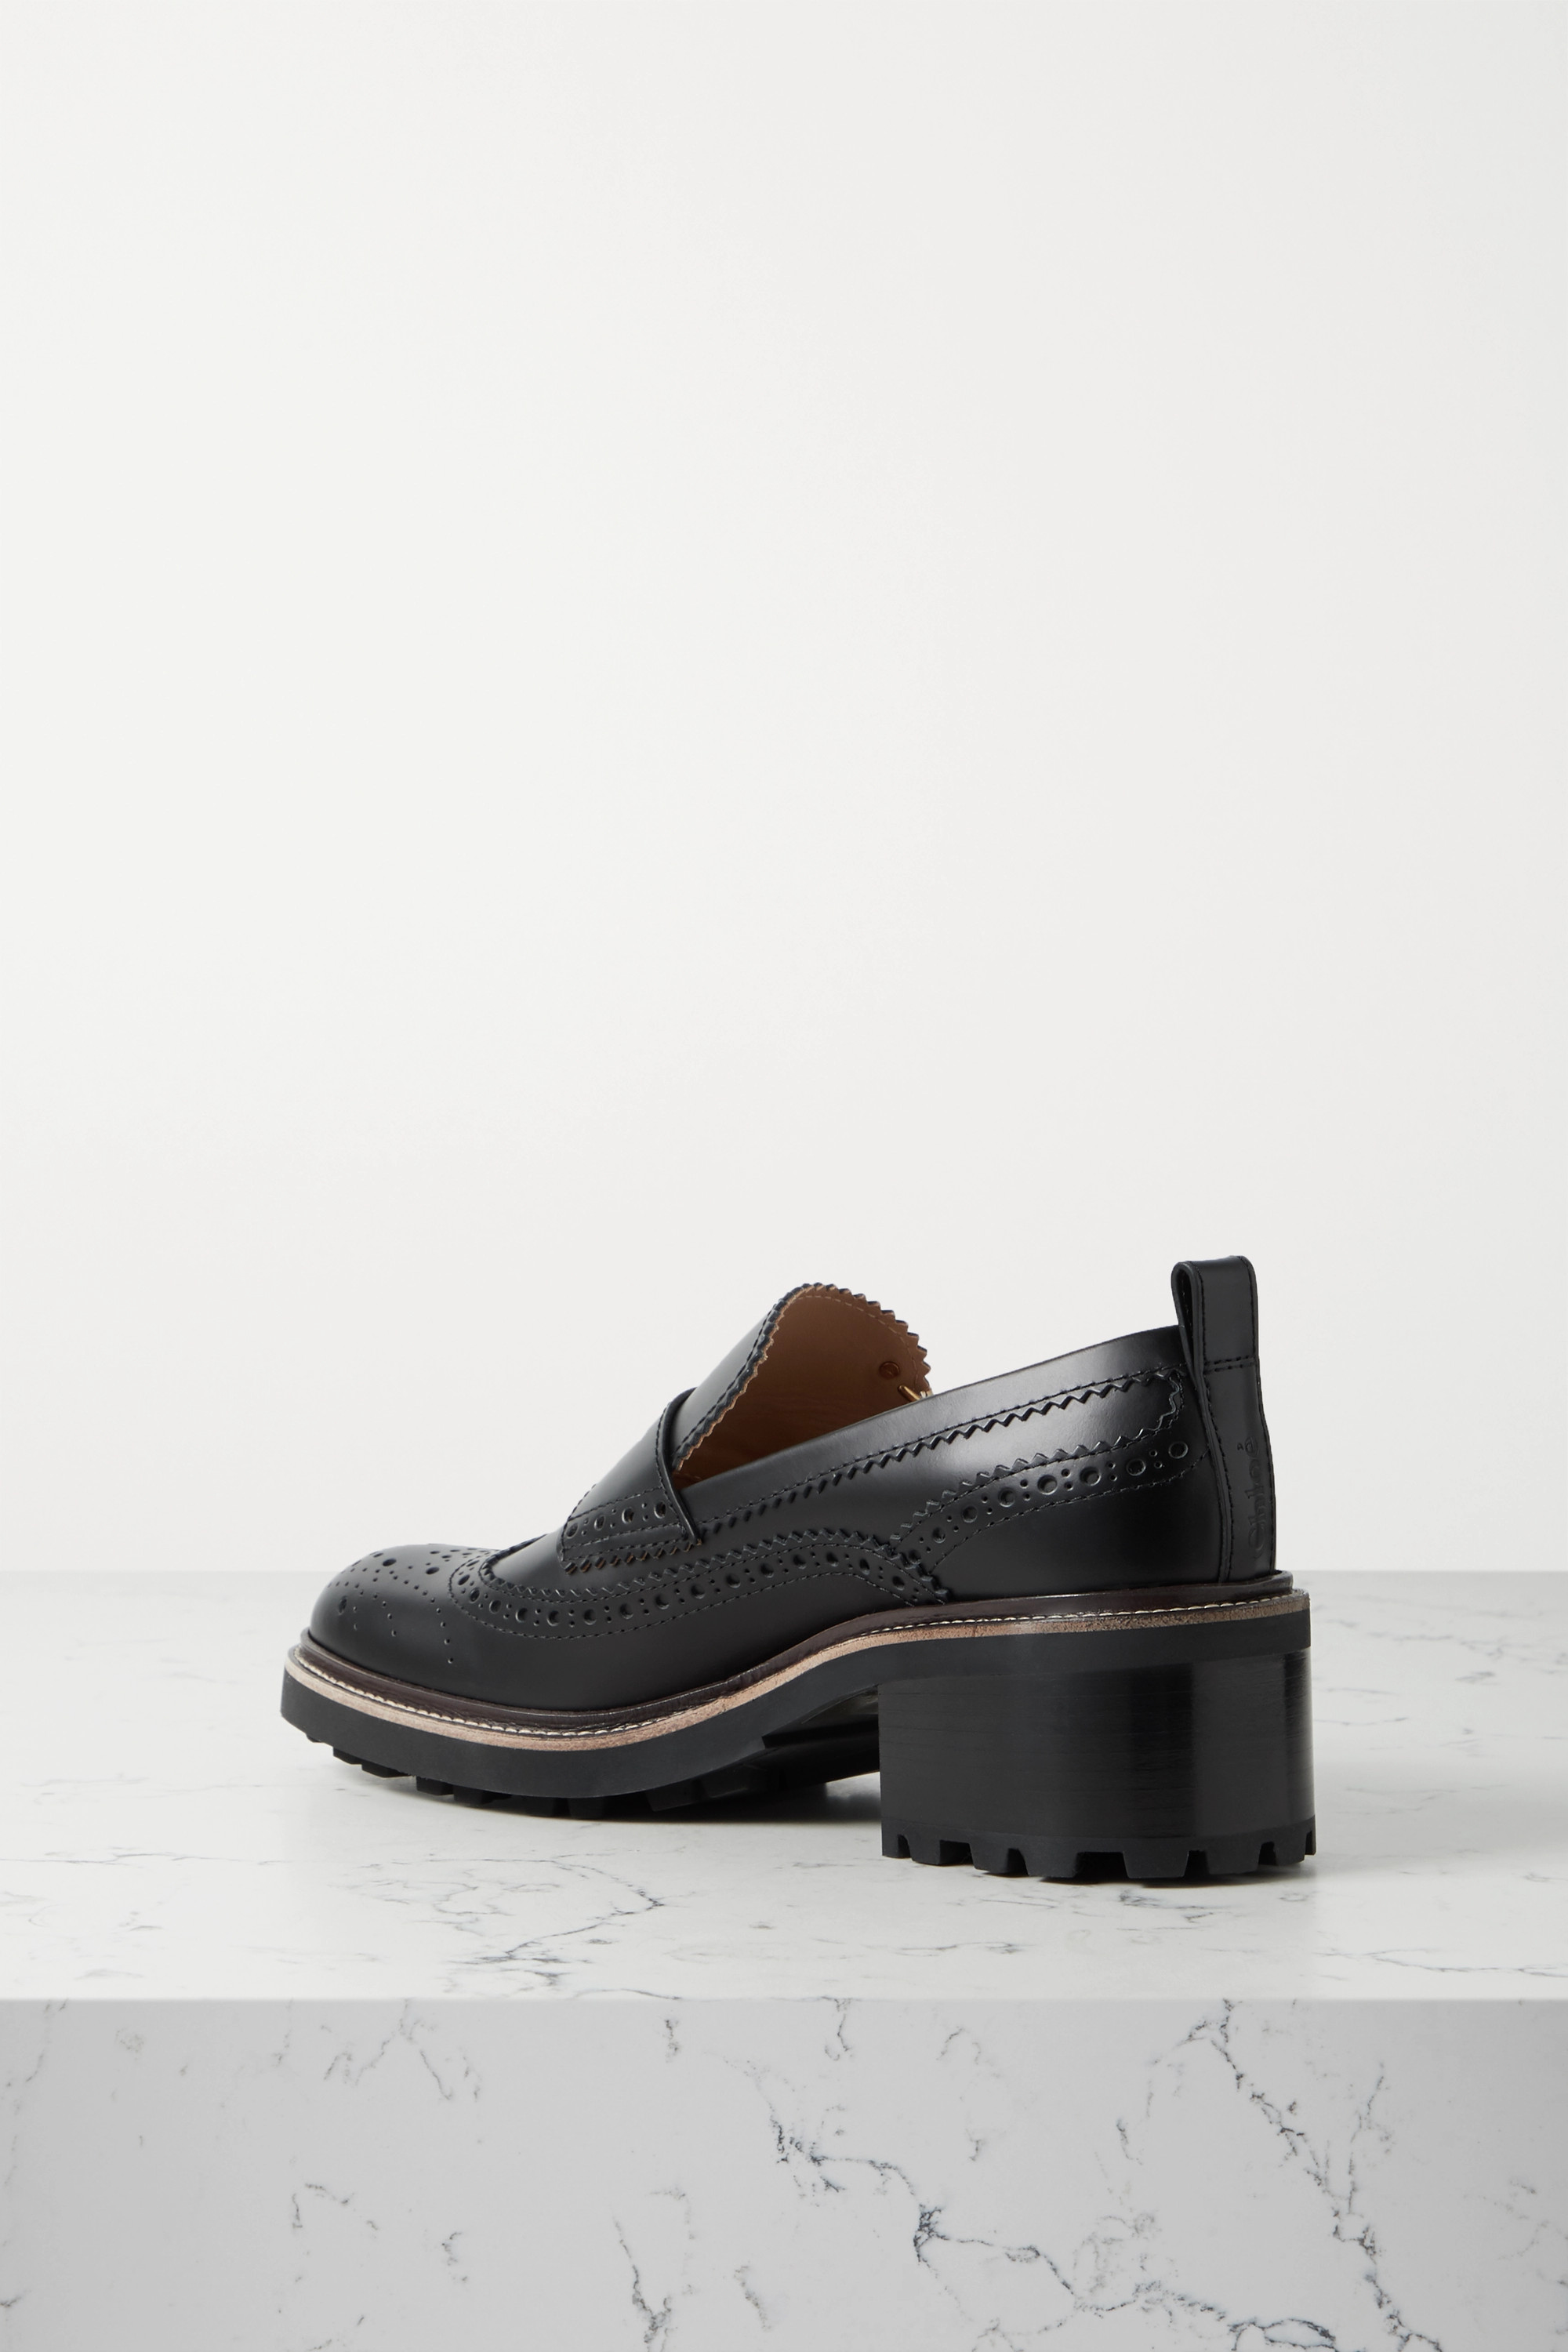 Chloé Franne leather loafers